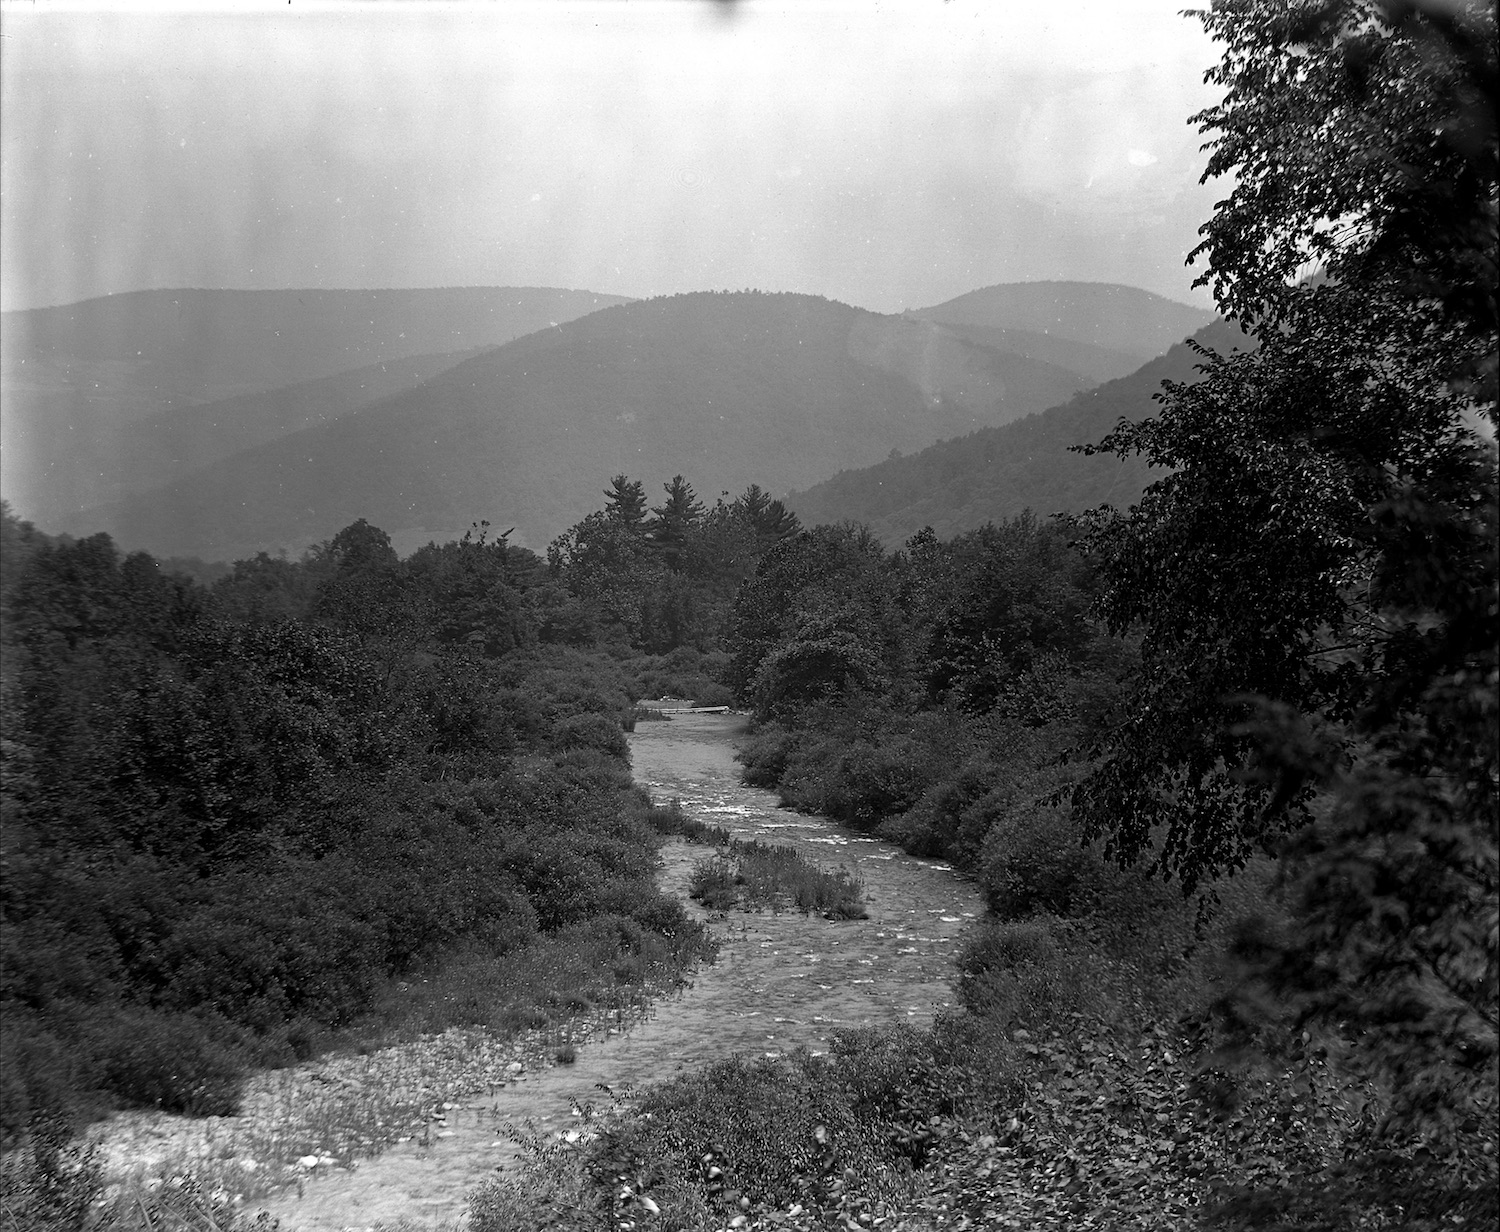 The Esopus Creek near Big Indian looking toward Rose Mountain, 1919. This image was taken for the New York State Conservation Committee in an effort to record Catskill forest-related activities.